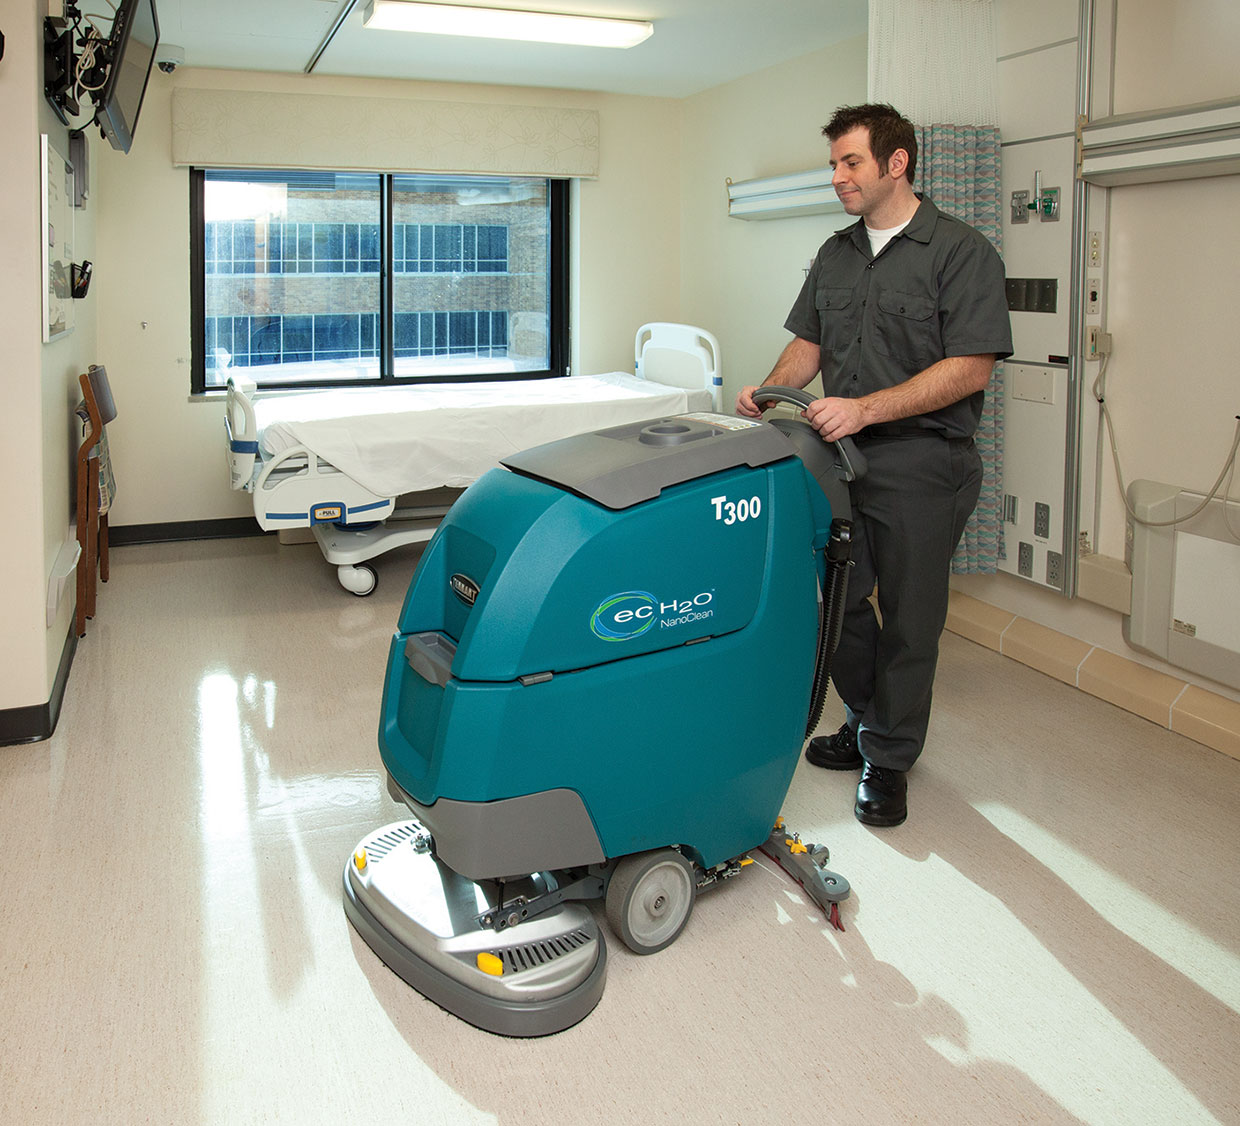 Cleaning a patient room with a scrubber